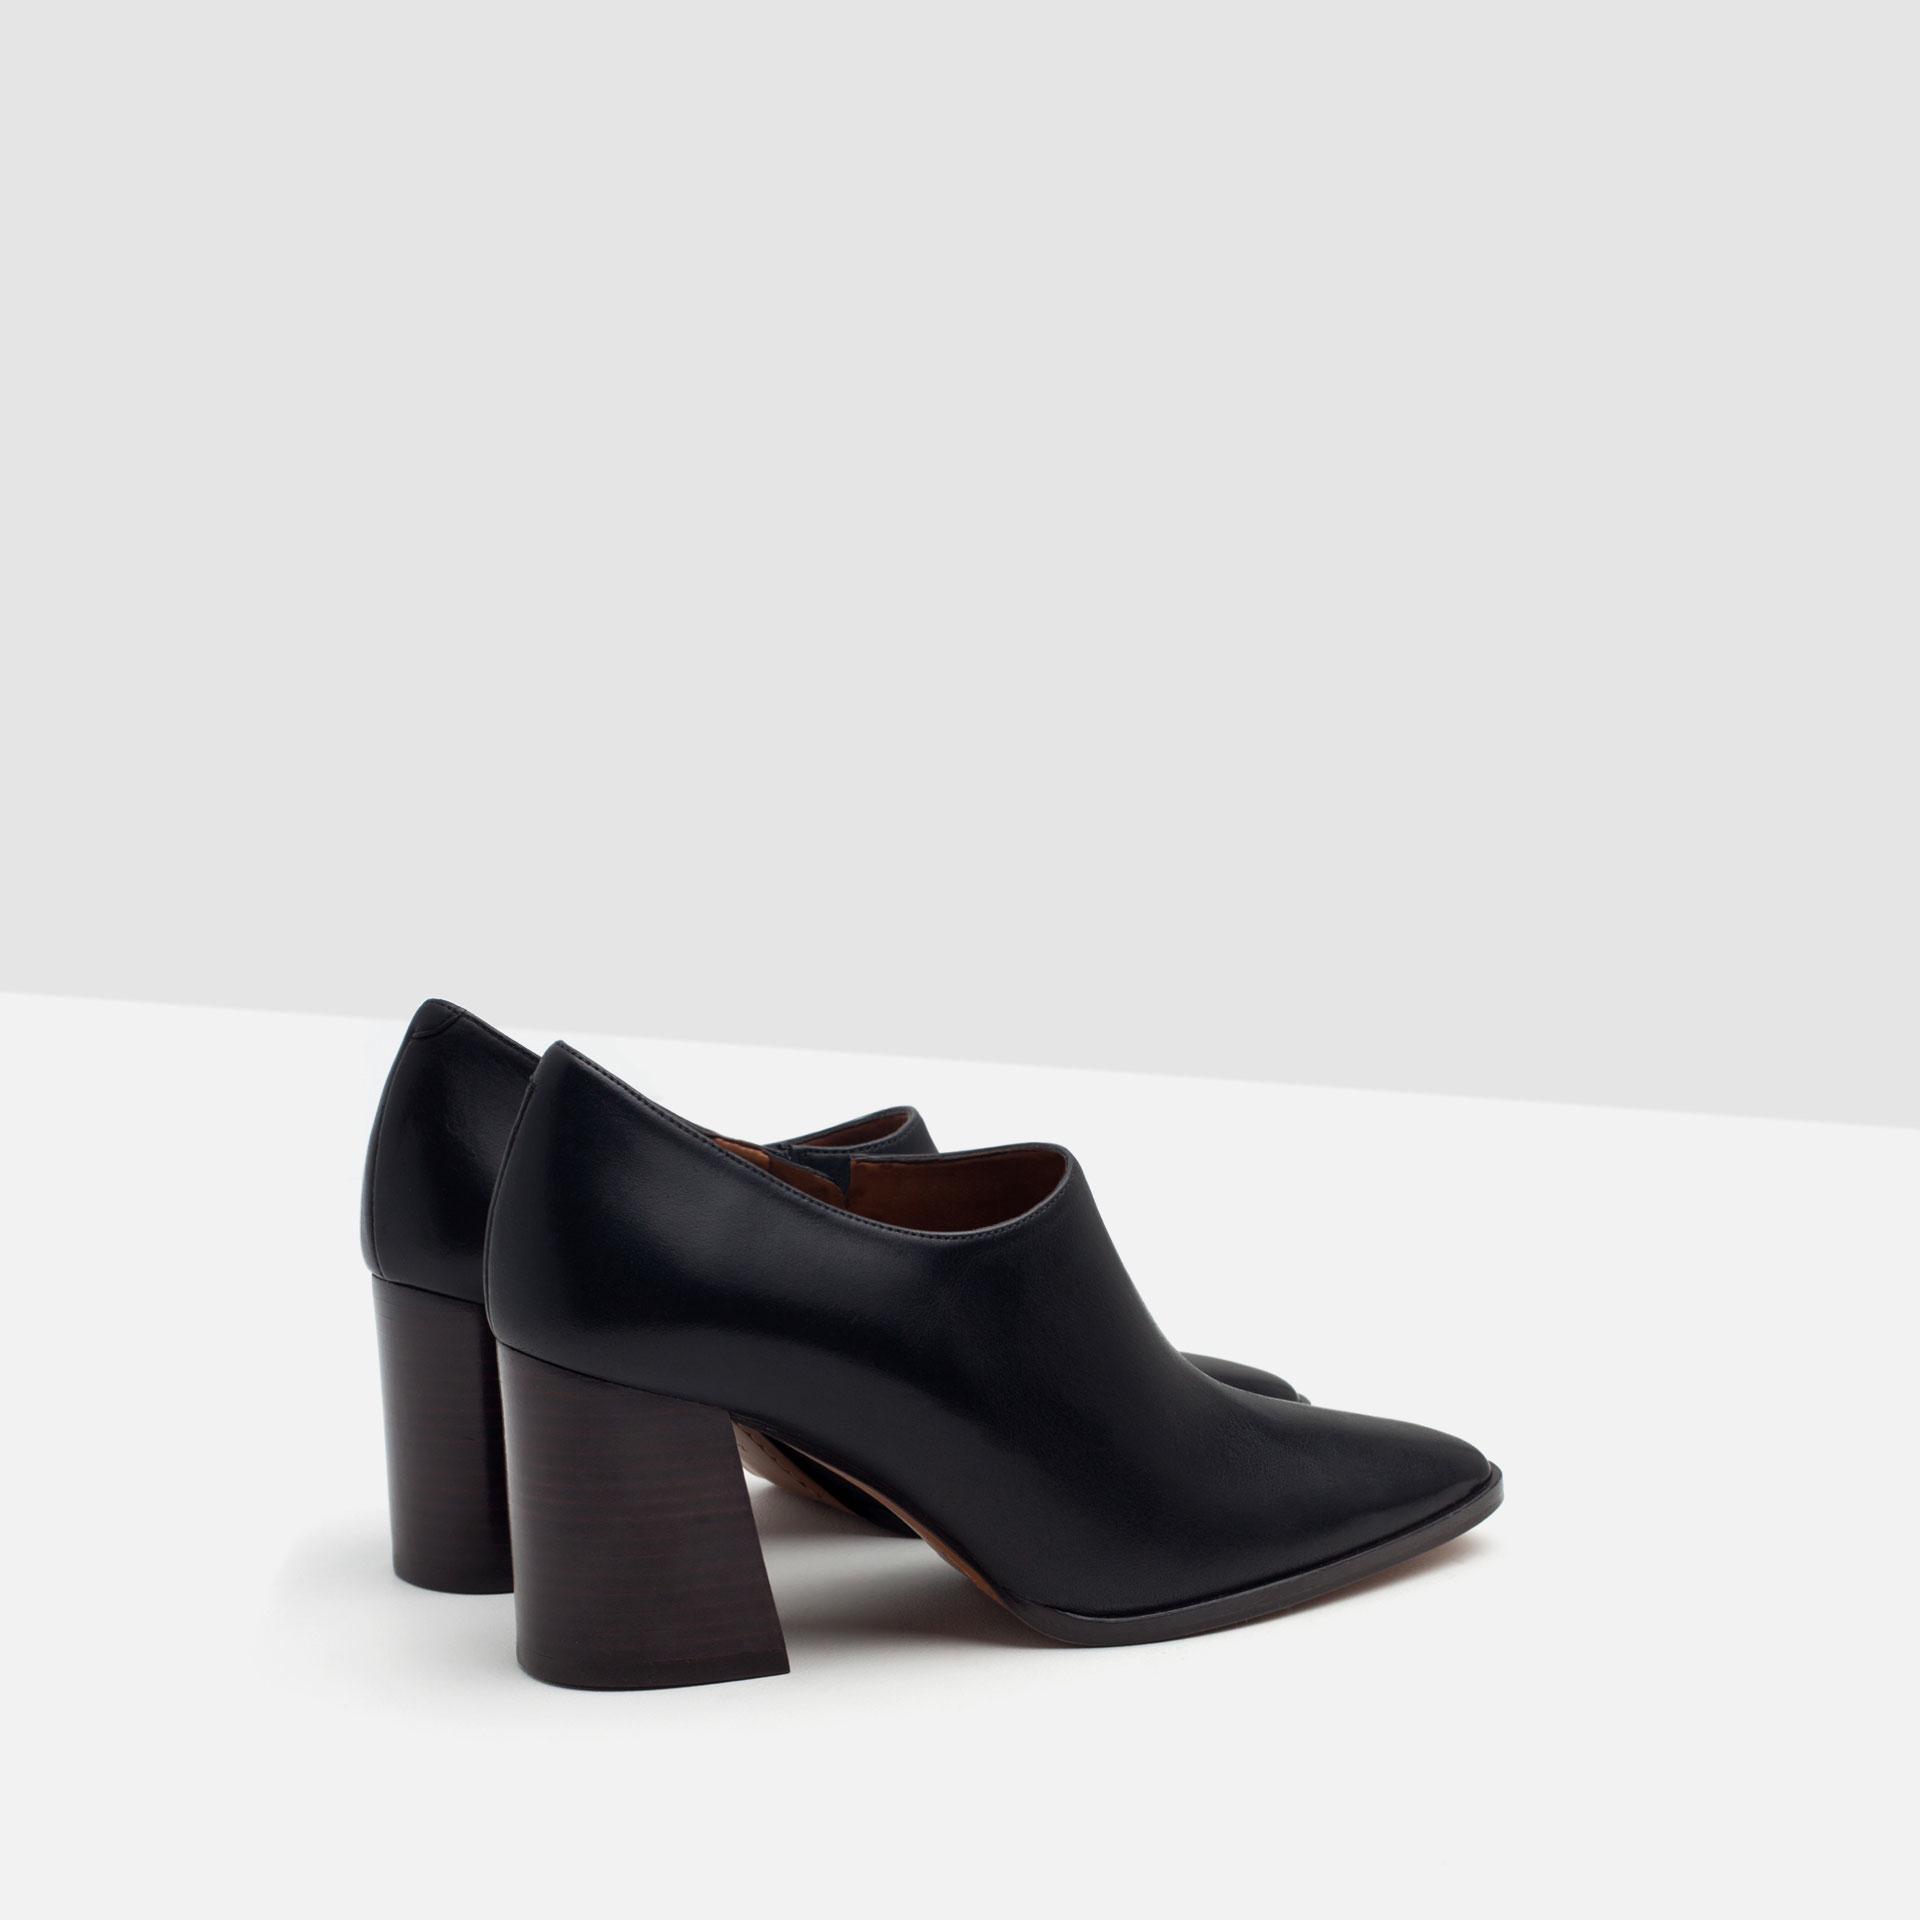 zara leather ankle boot style shoes in black lyst